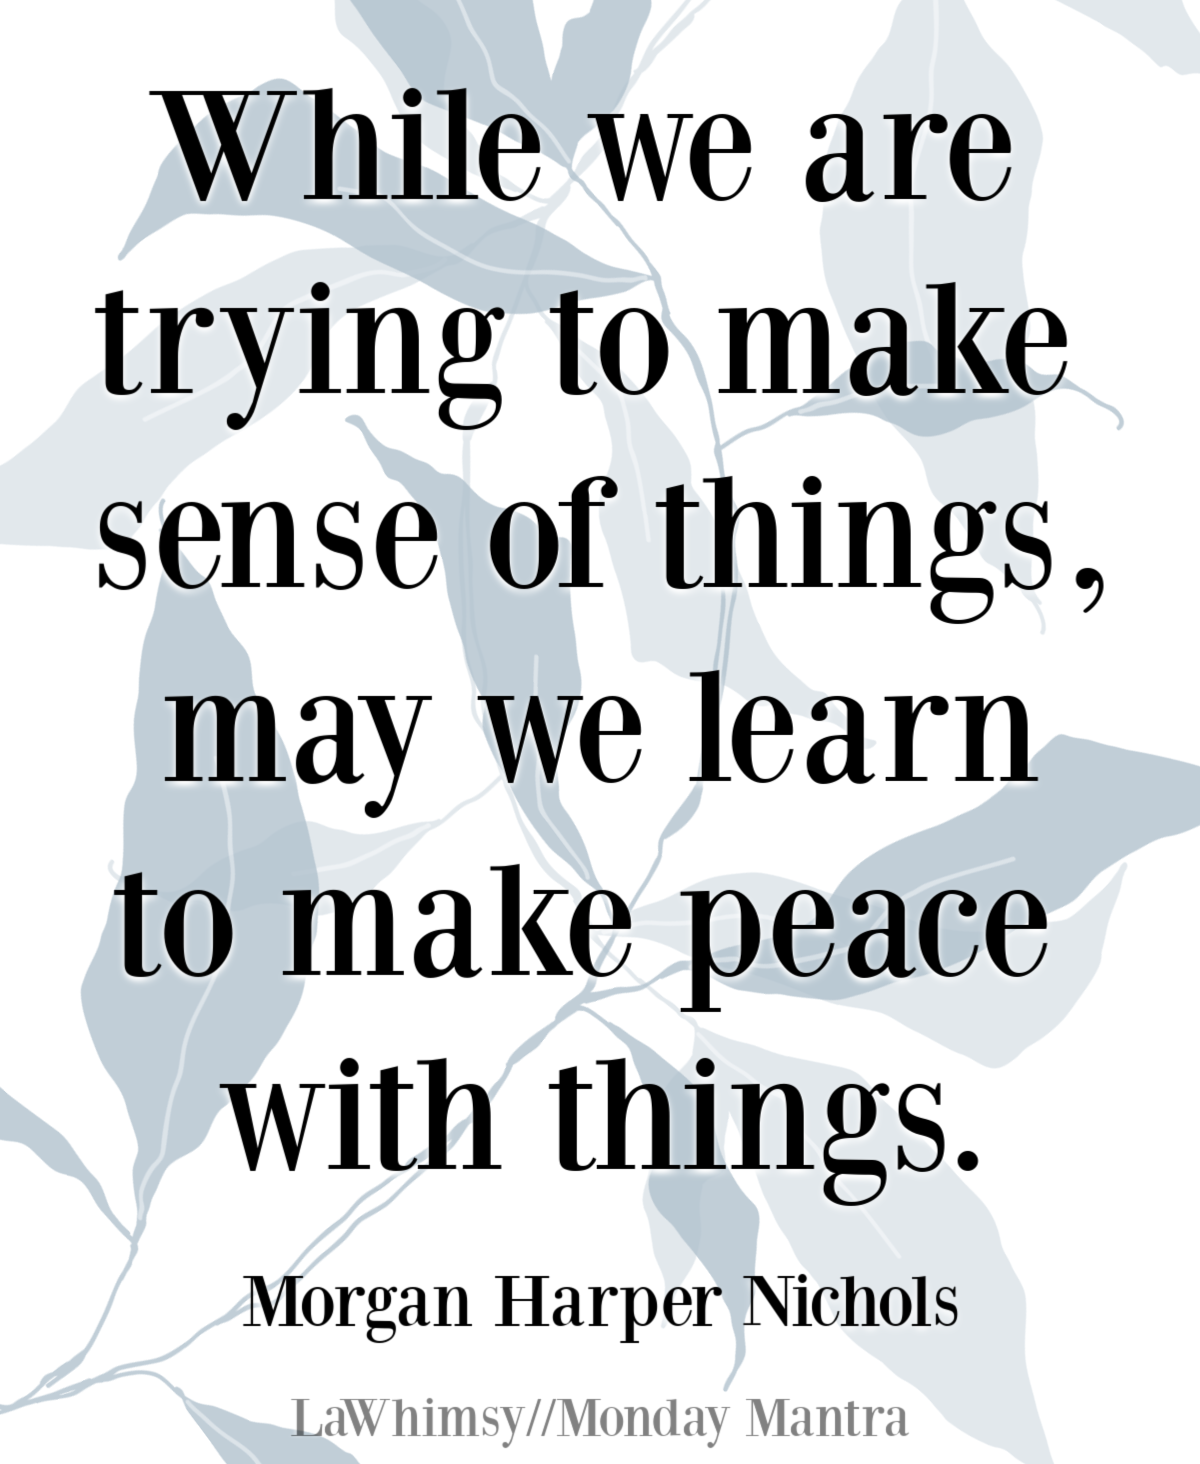 While we are trying to make sense of things, may we learn to make peace with things Morgan Harper Nichols quote Monday Mantra 283 via LaWhimsy